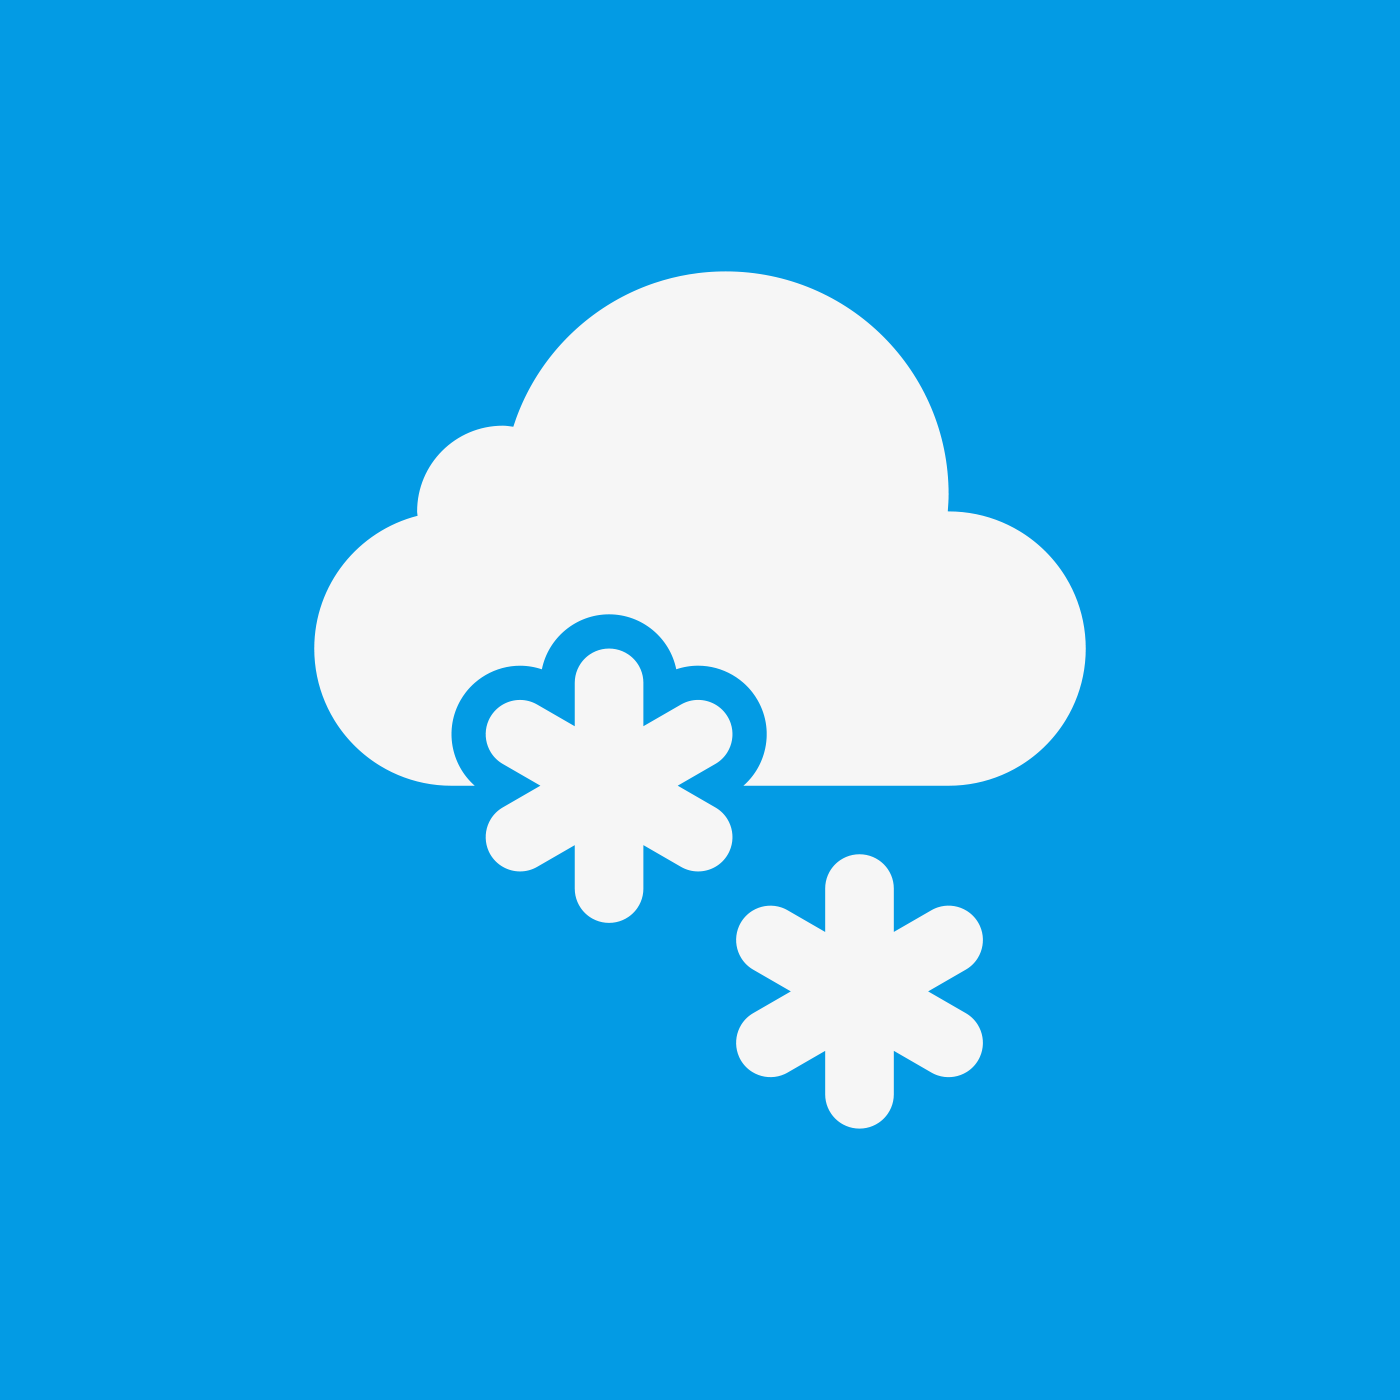 Icon Design: Weather